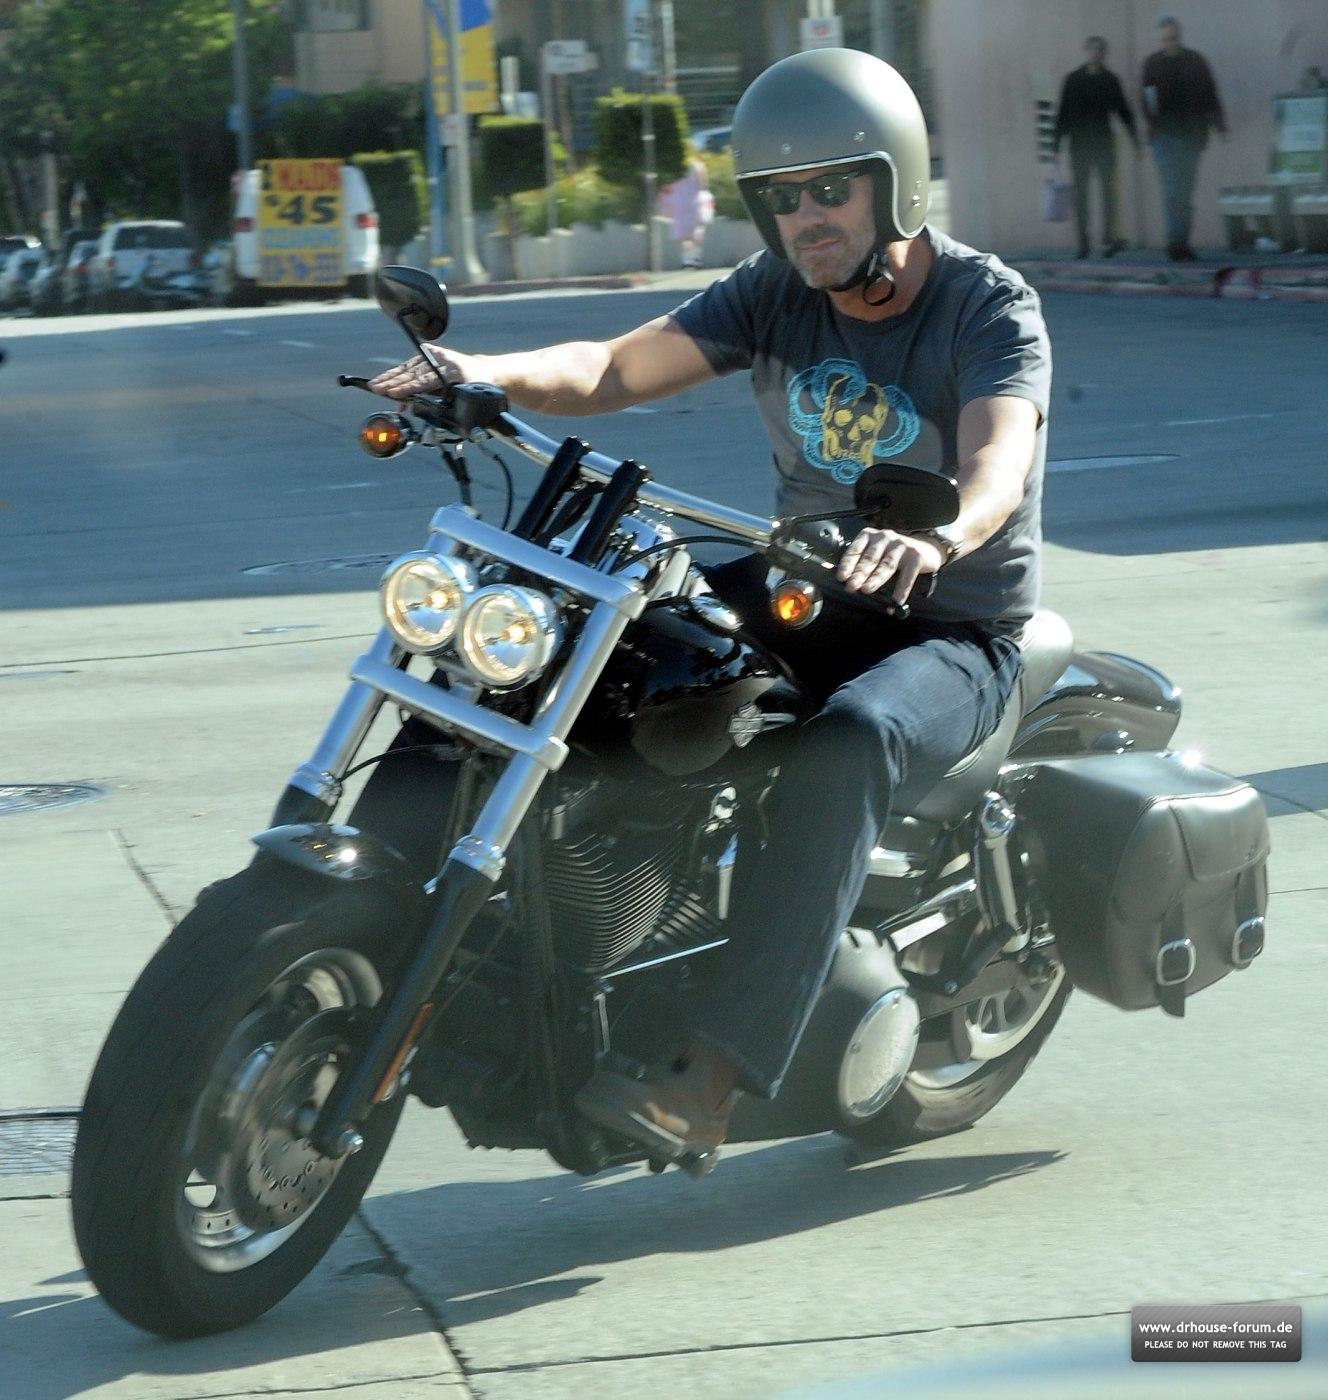 http://2.bp.blogspot.com/-vGCqzCeDYfU/T1P4b7uIwqI/AAAAAAAAA1I/6JhtzHozUis/s1600/Hugh+Laurie+-+Riding+his+Harley+Davidson+along+the+Sunset+Boulevard+-+March+201210.jpg